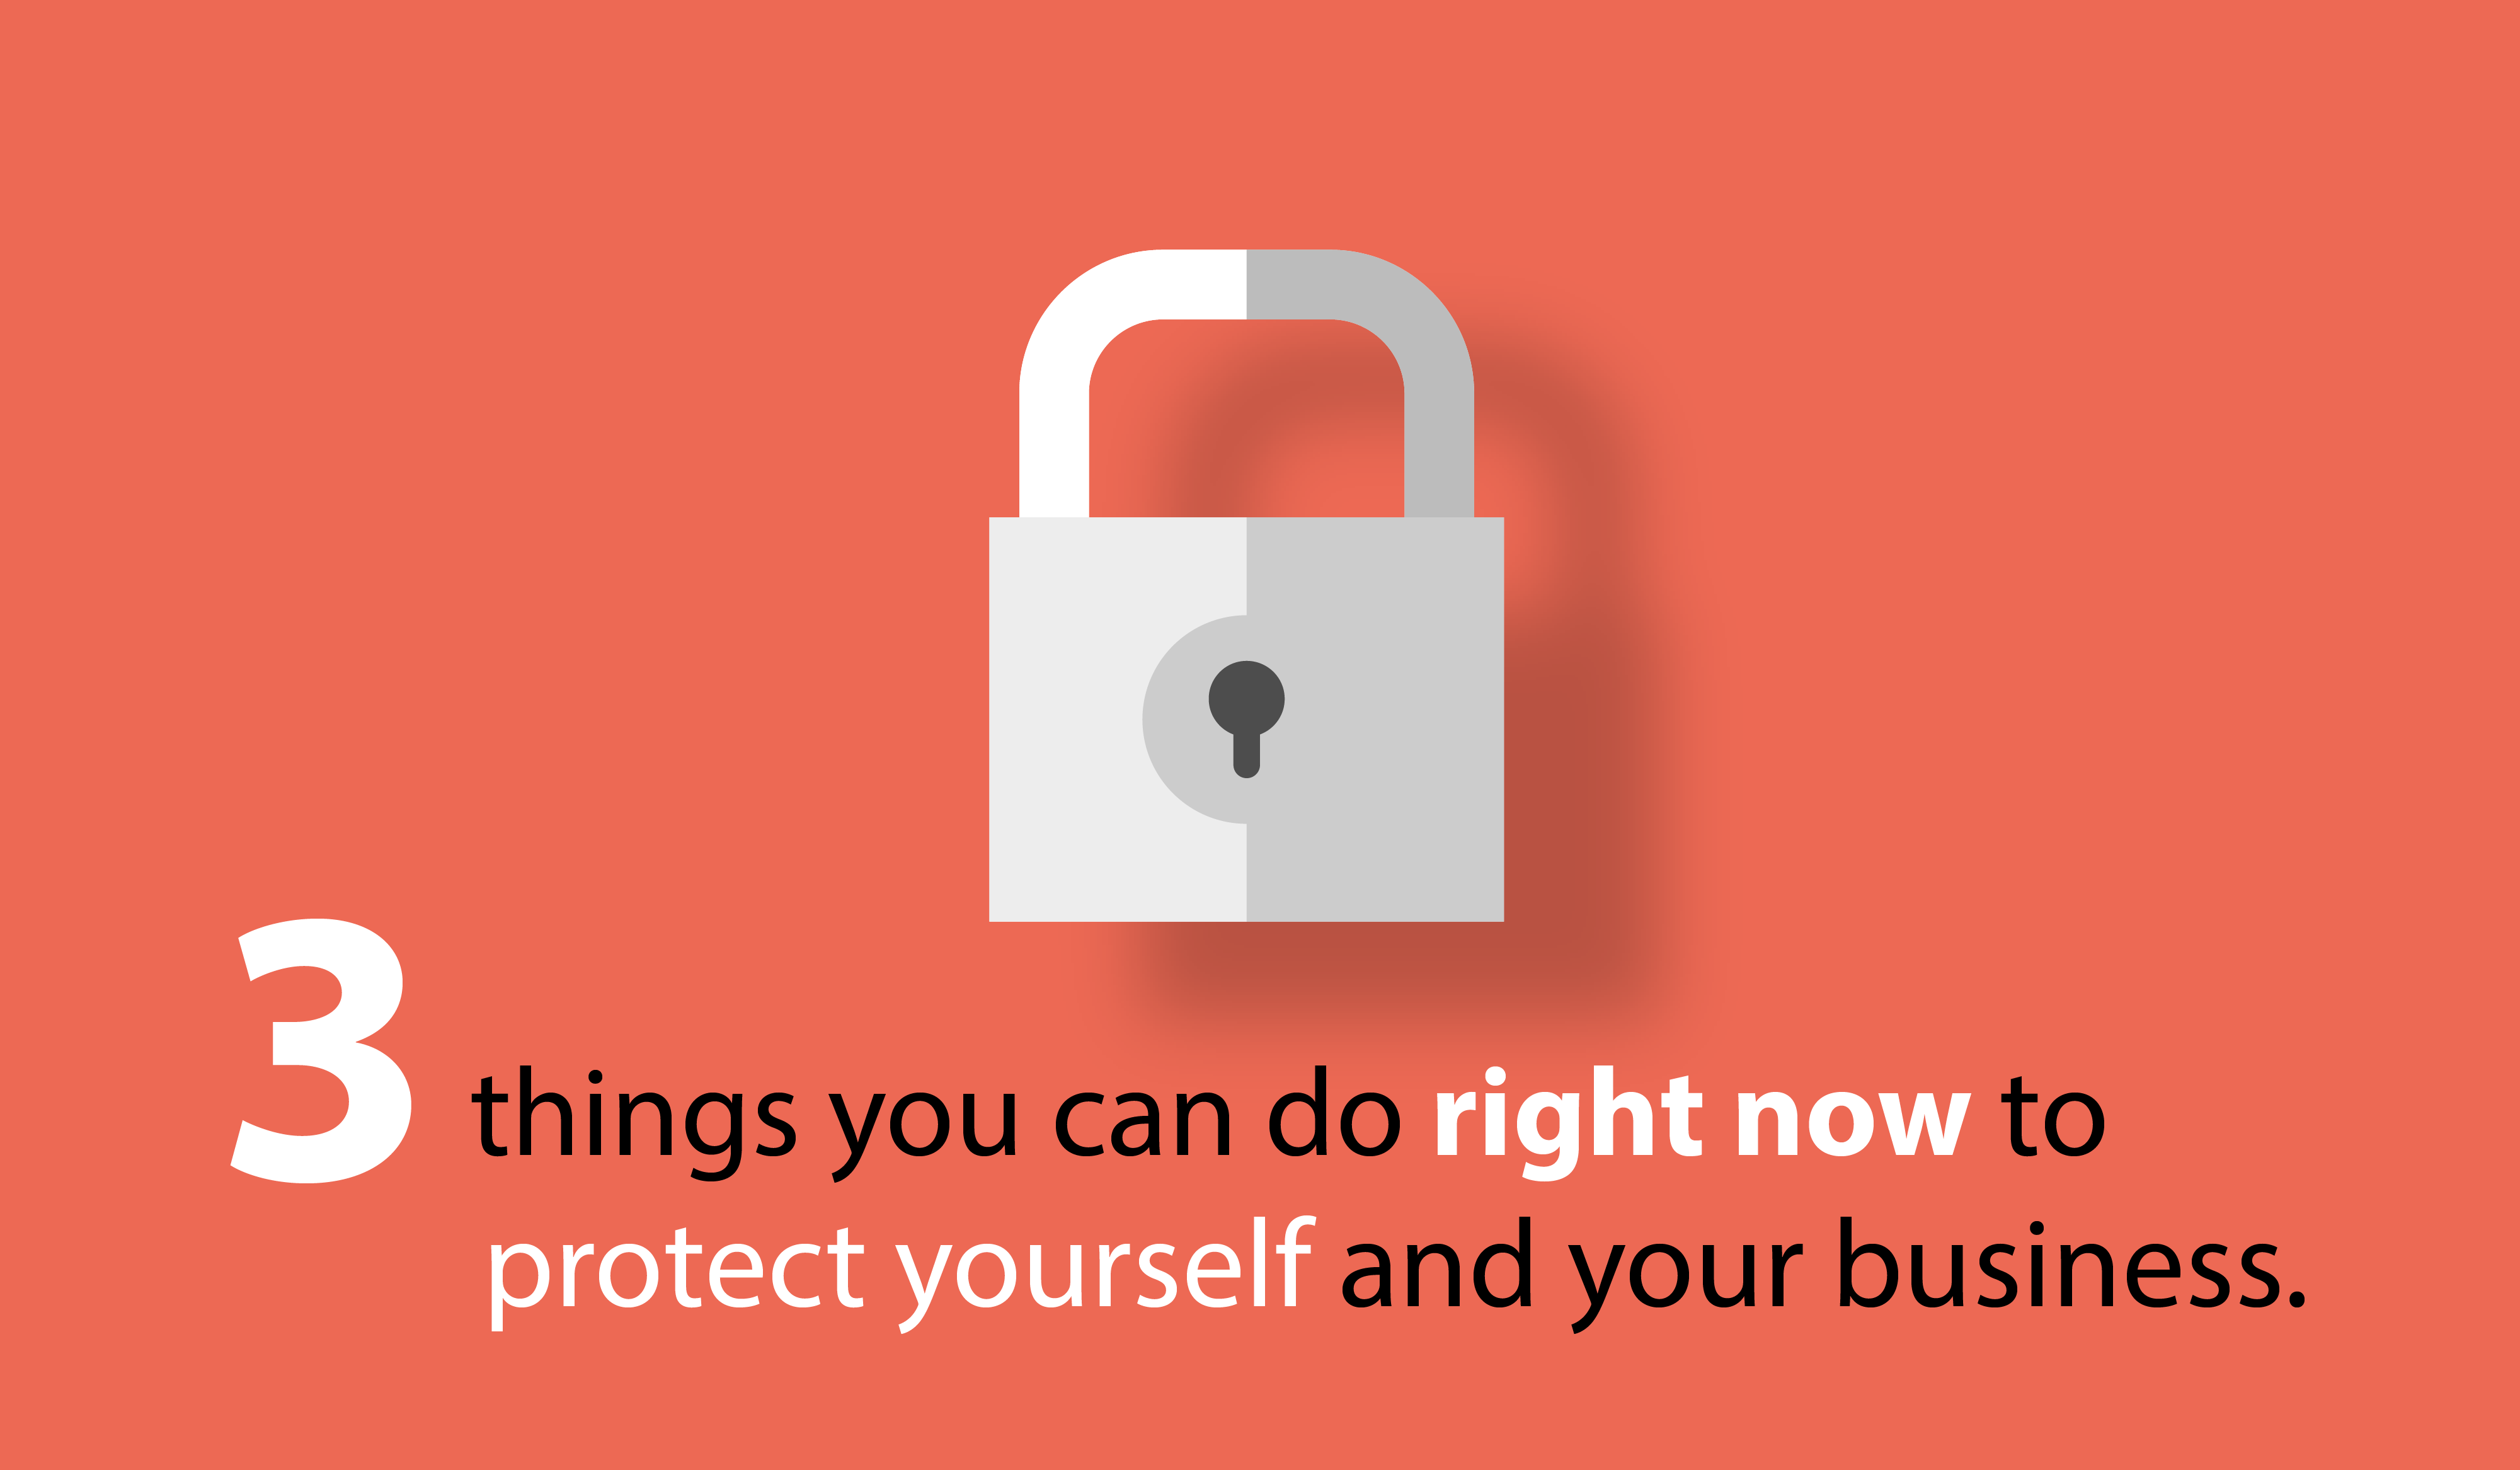 3 things you can do right now to protect yourself and your small business.